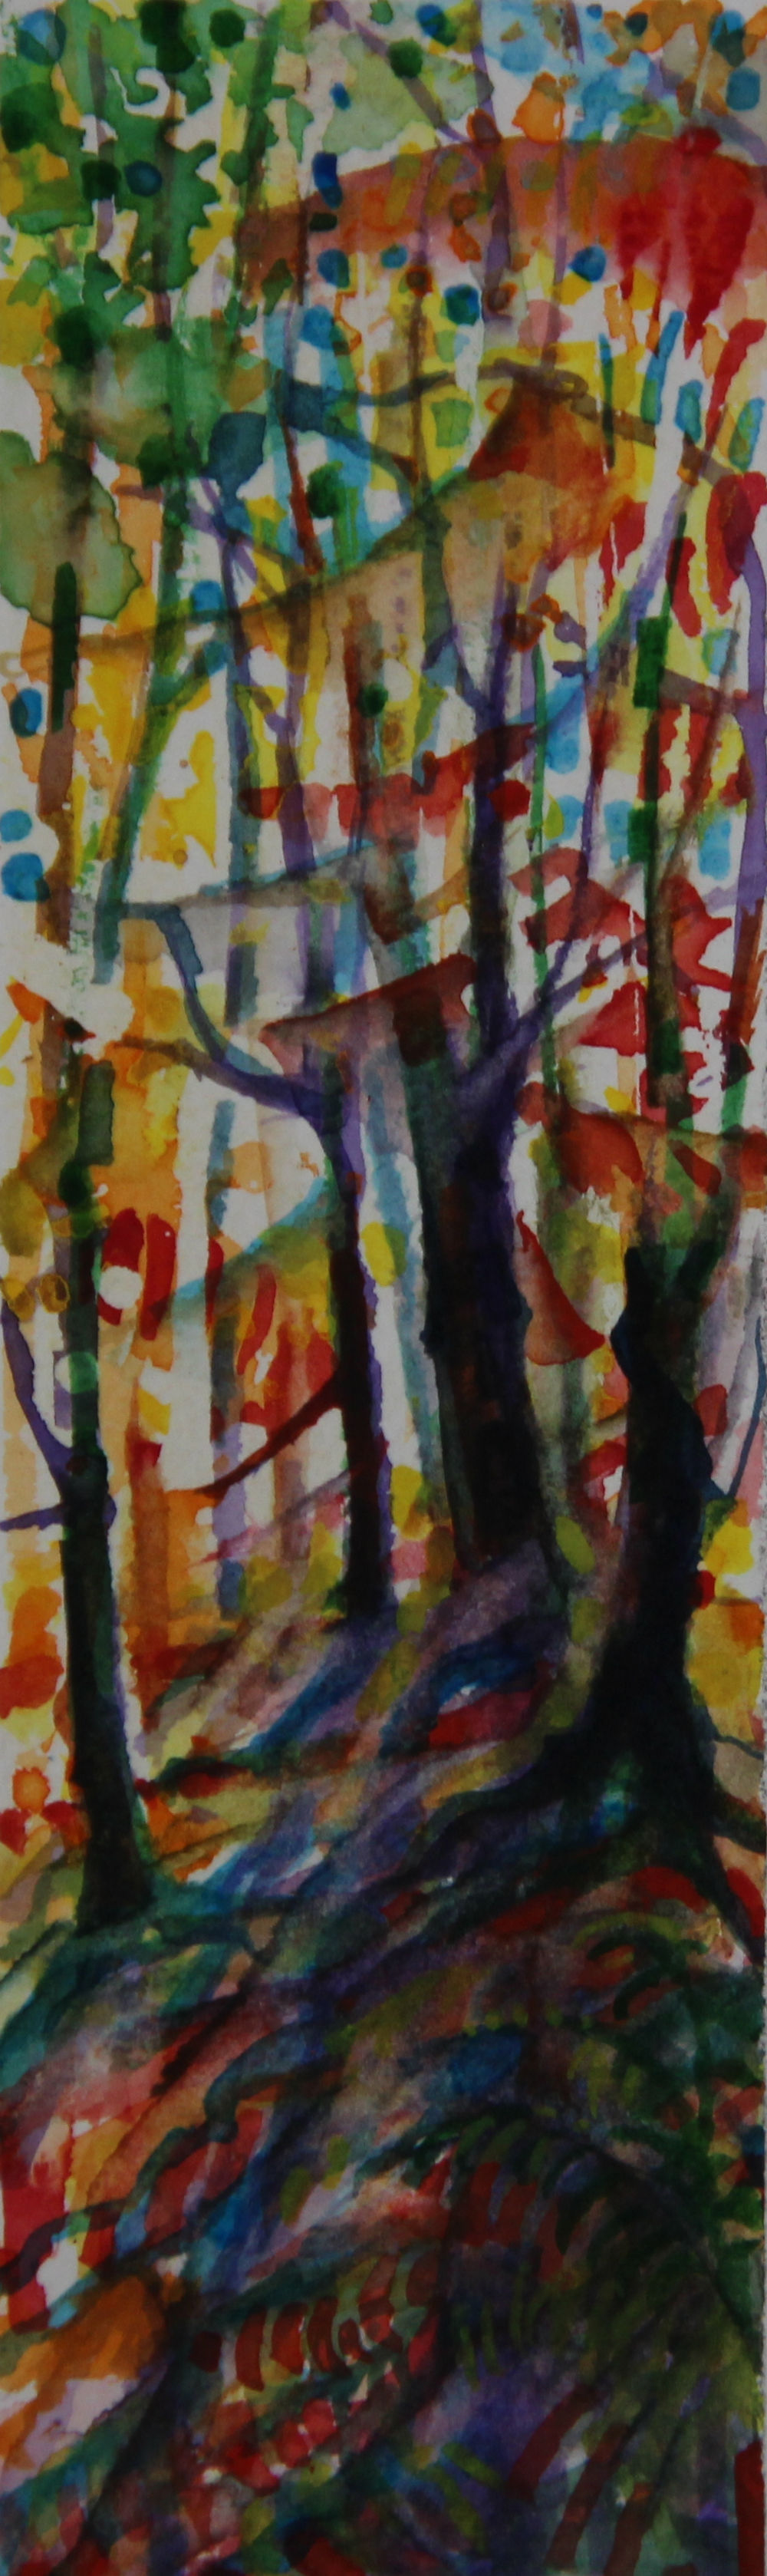 Autumn Forest Scene 04, about 6H x 2W inches watercolors on 140 lb cold pressed